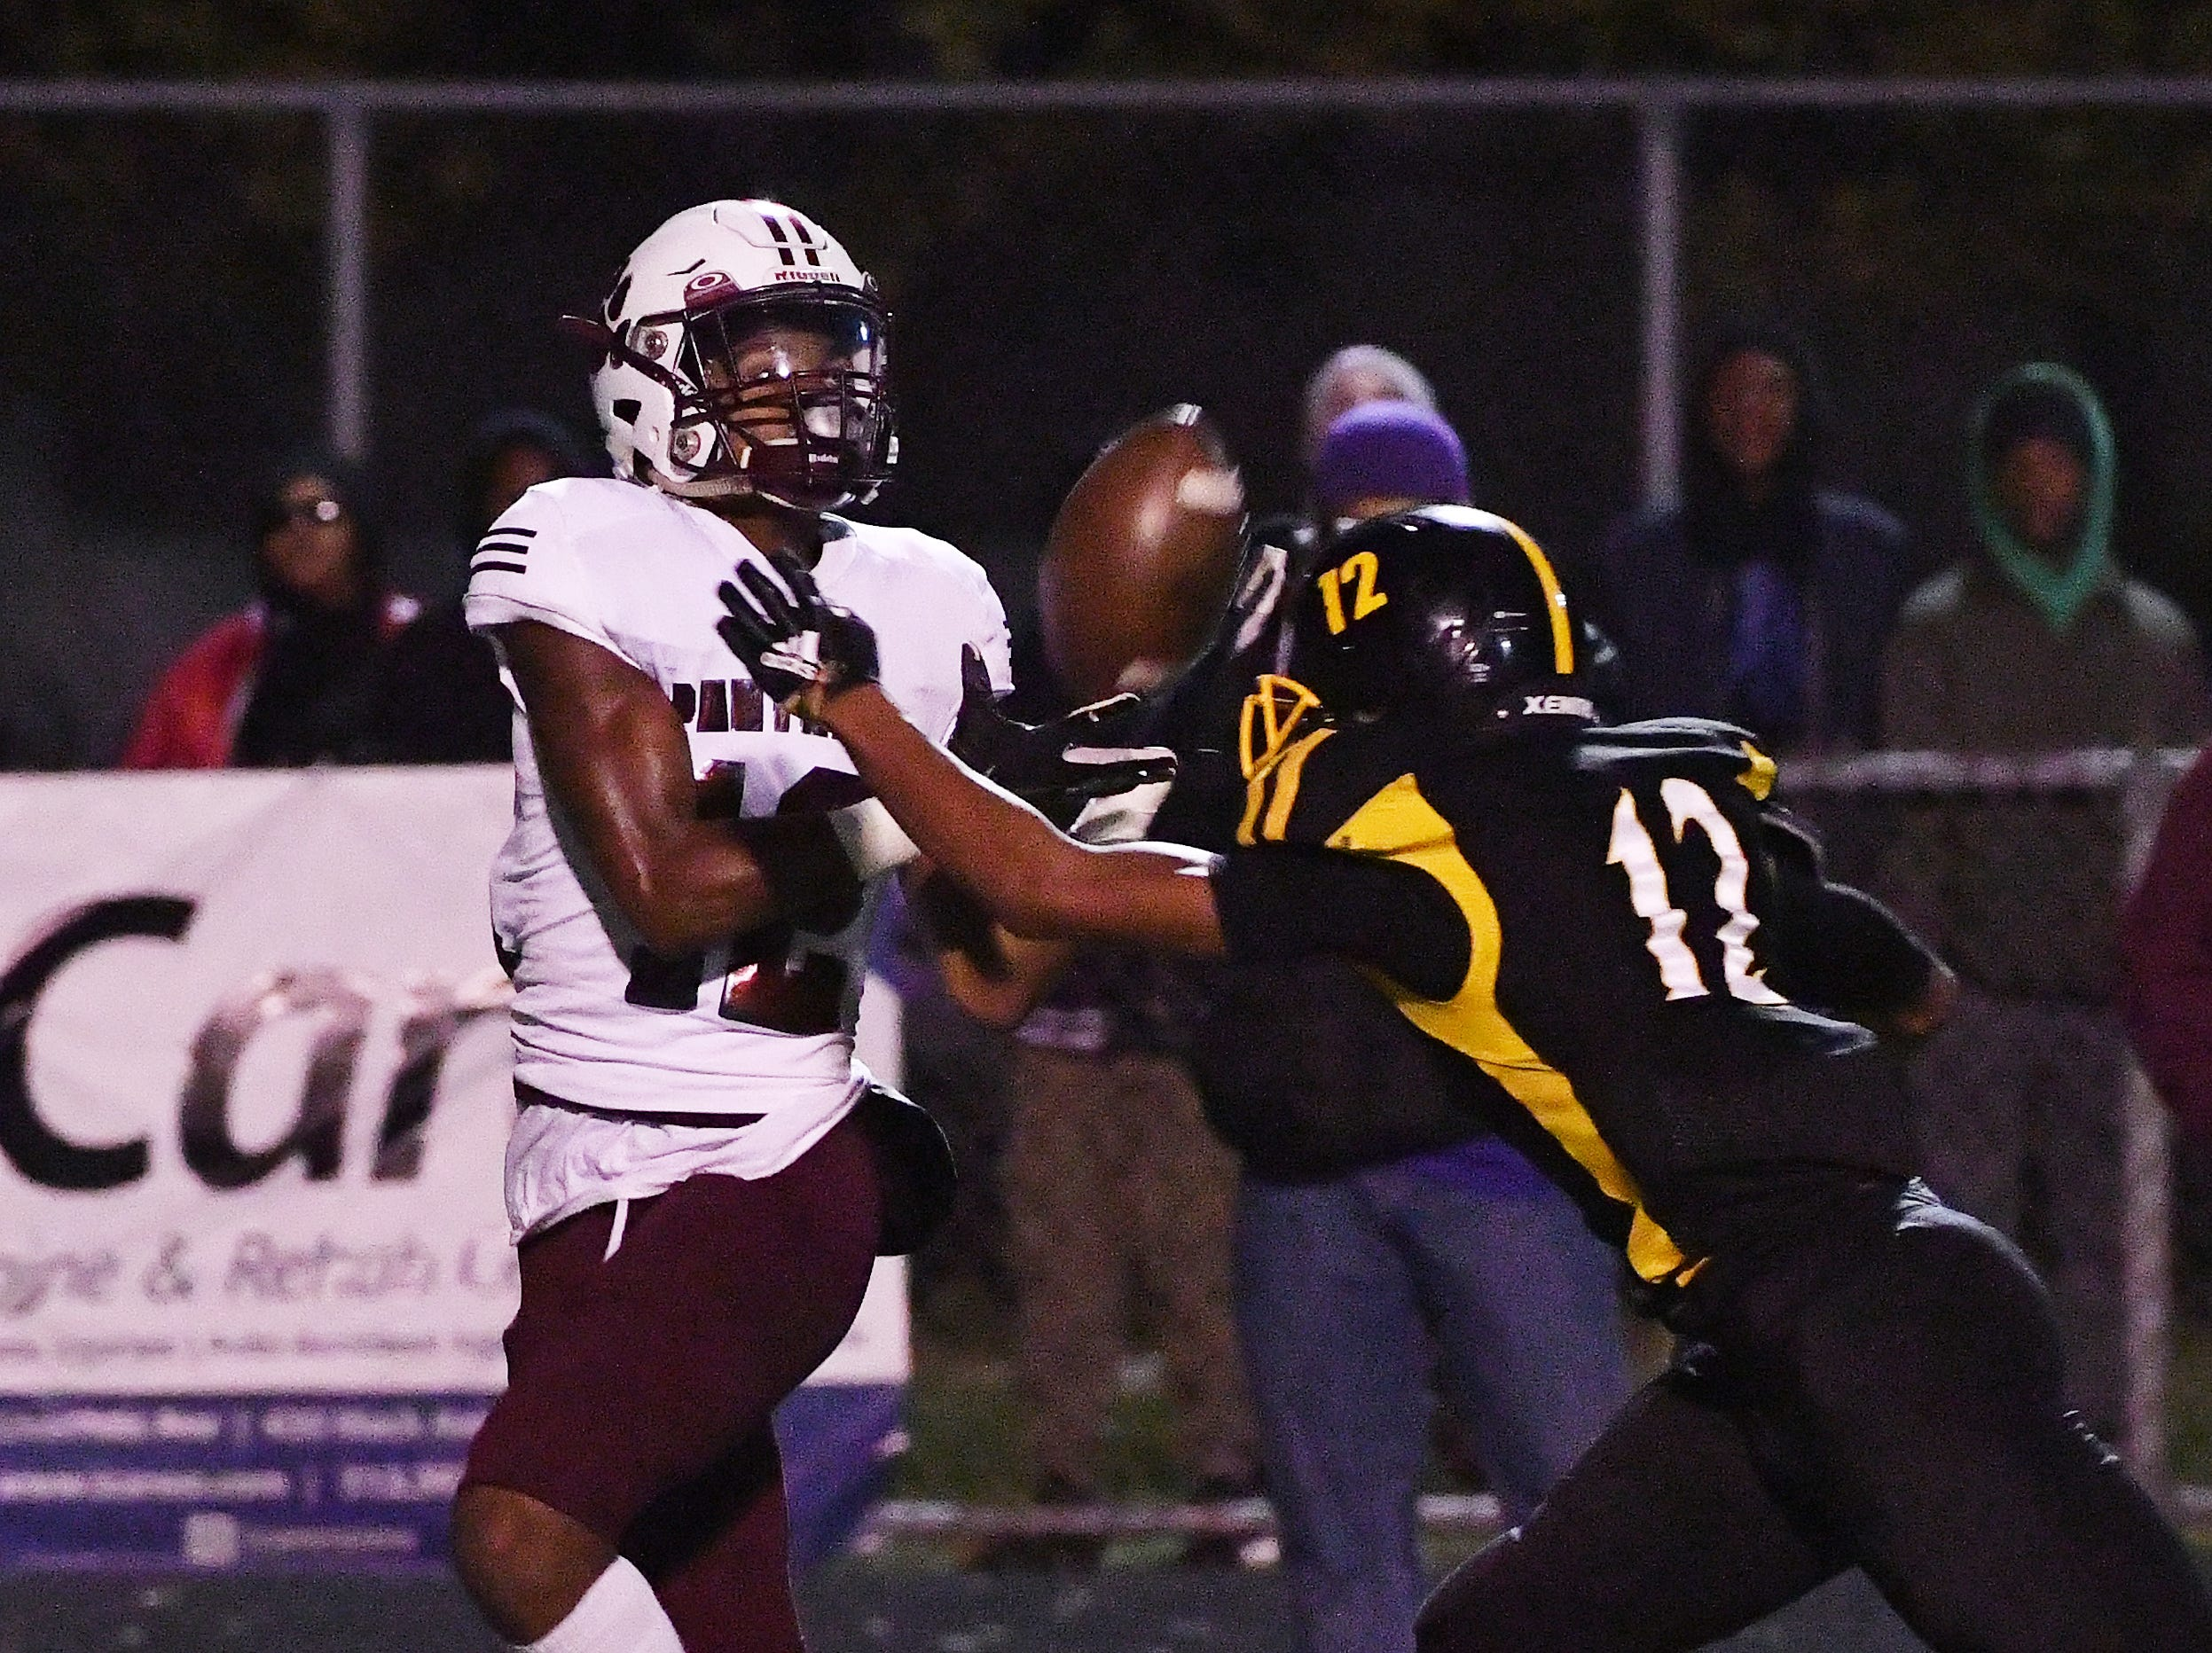 Rouge's Chrystenn Cochran brings in a long reception in front of King's Joe Frazier in the fourth quarter.